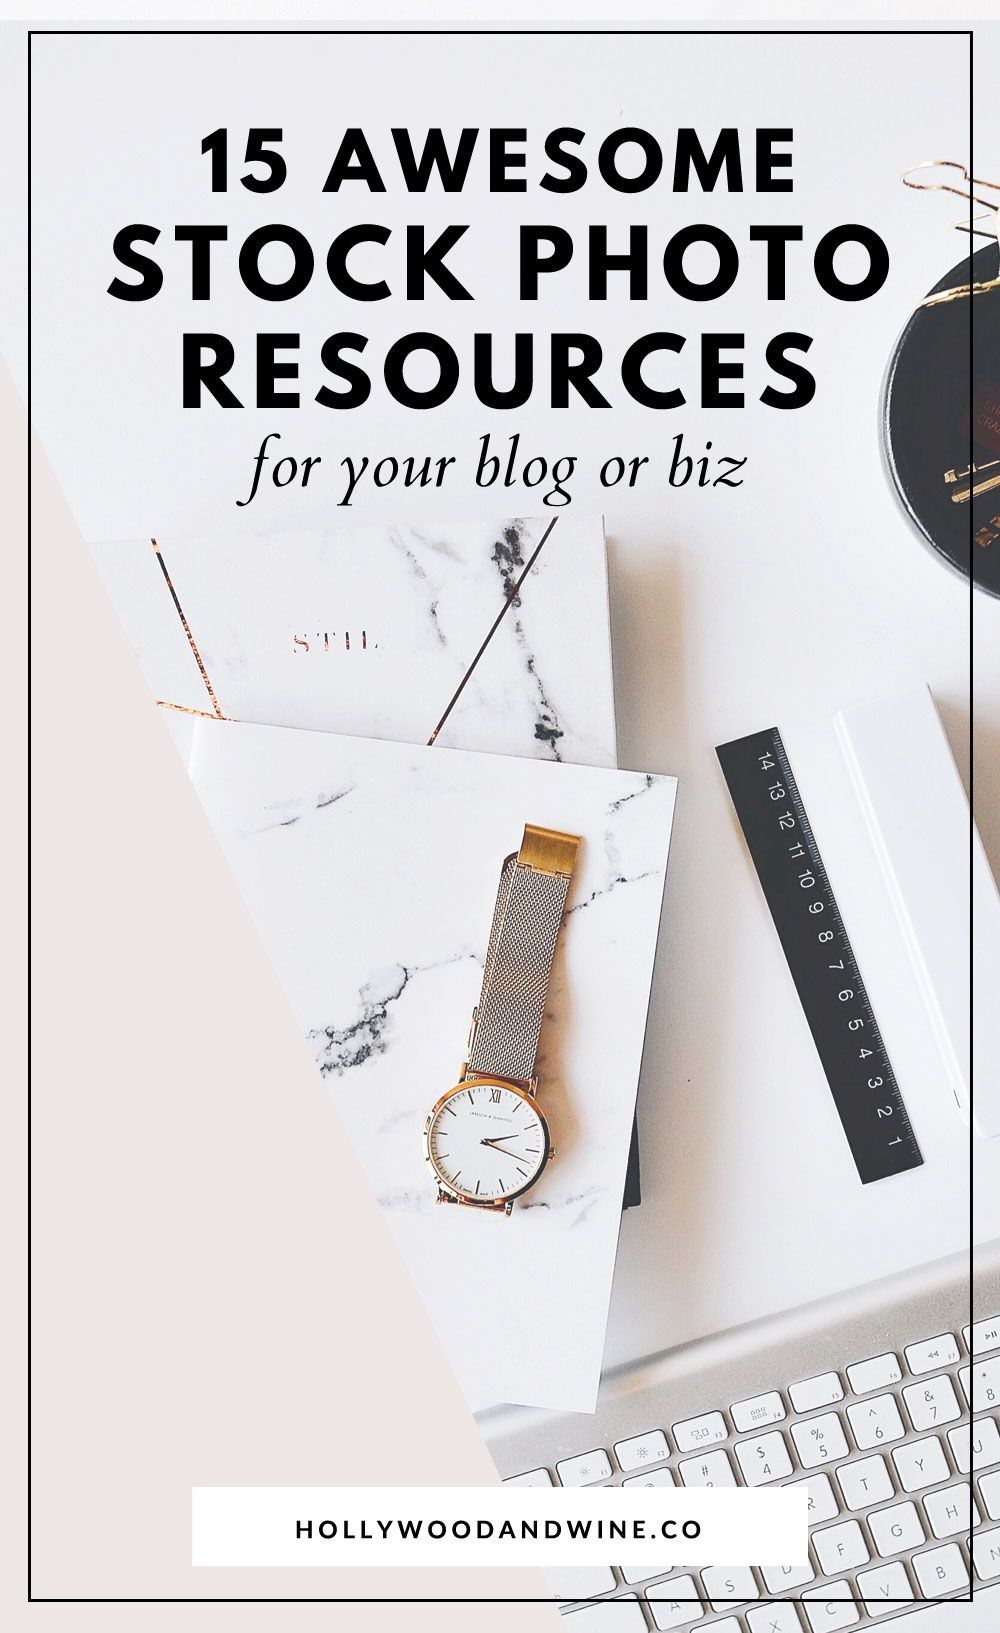 15+ of the best places to get stock photos for your blog! I'm sharing a list of my personal favorite stock photo resources for your blog. All of these sites offer stock photos (free or paid) that are available to use for your blog or biz.